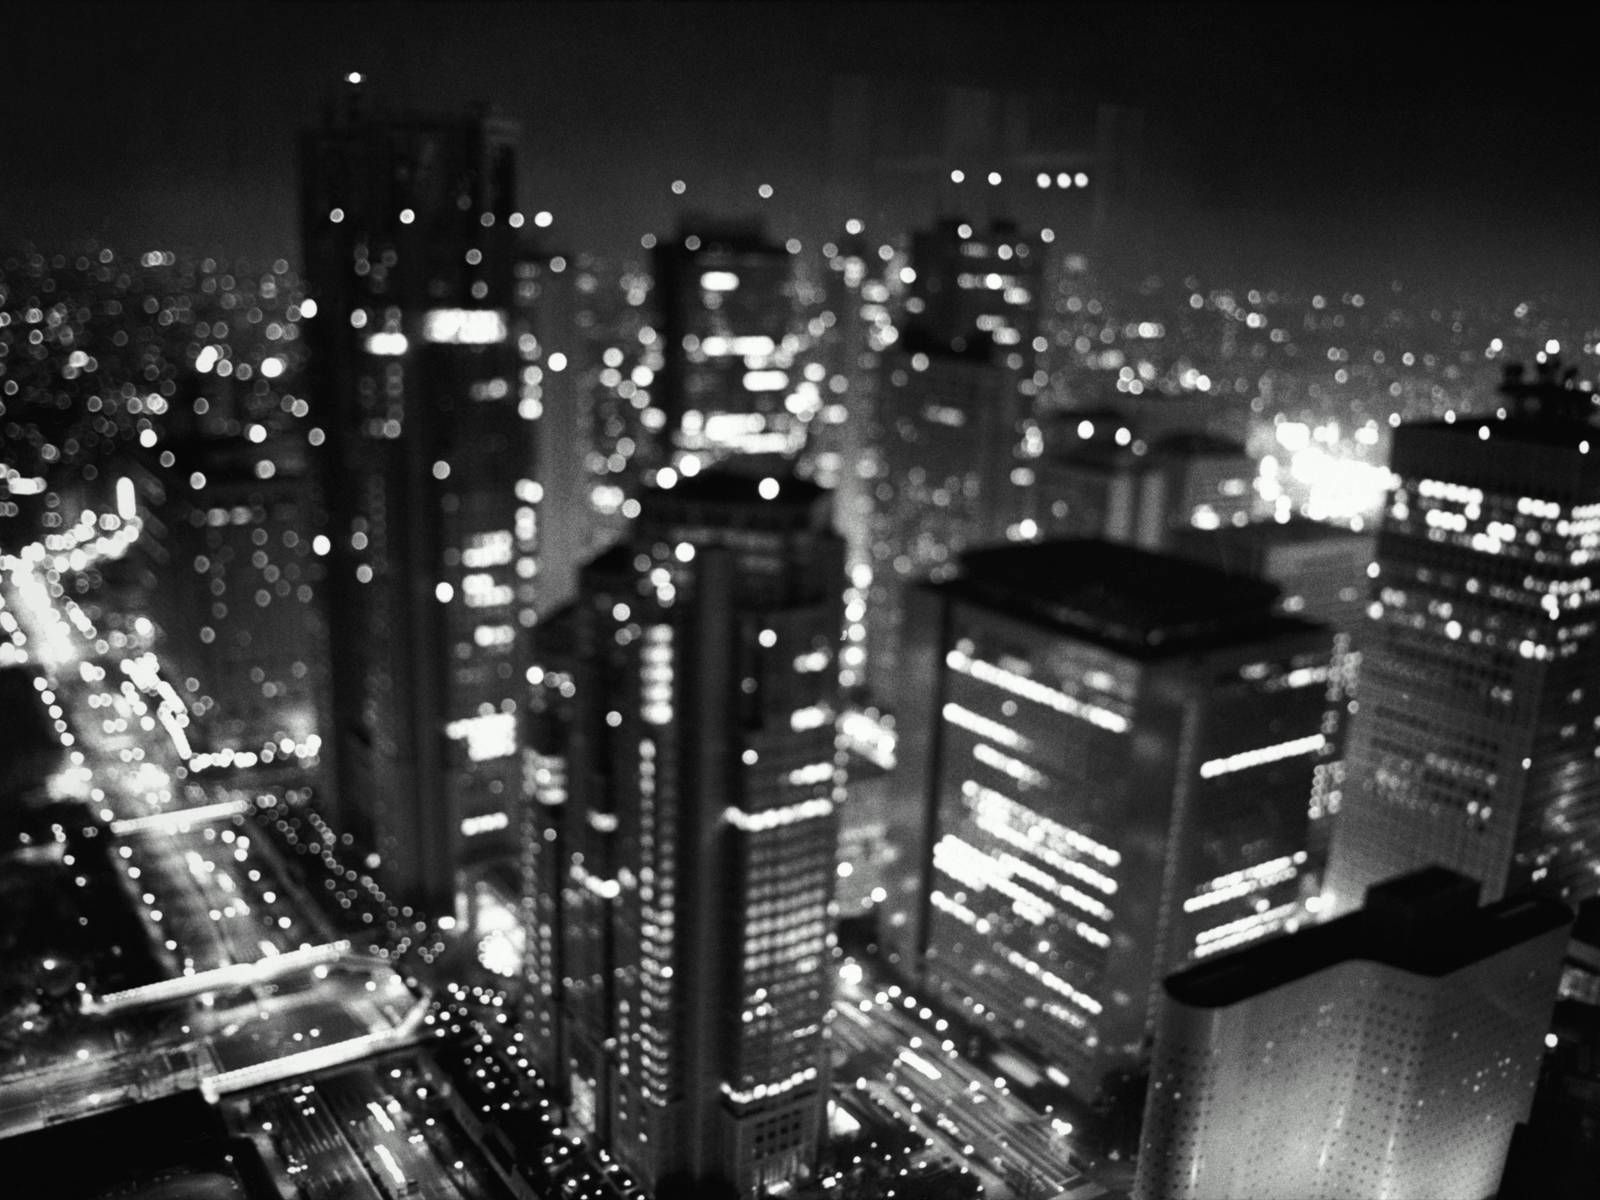 Tokyo Wallpapers Black And White Phone City Wallpaper Black And White Wallpaper Dark City